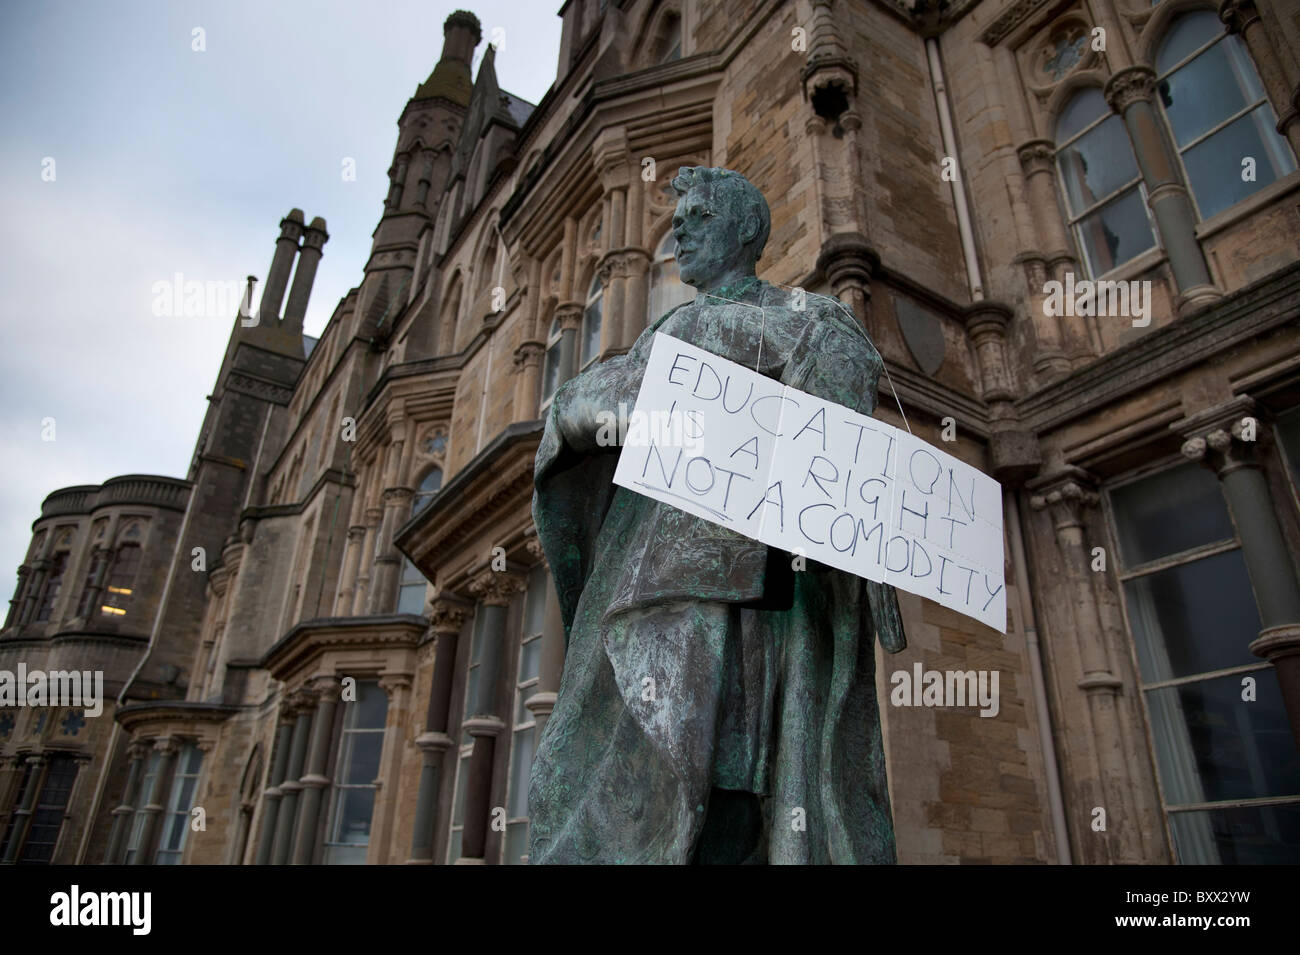 Aberystwyth university students protesting at the planned cuts in higher education funding, UK - Stock Image